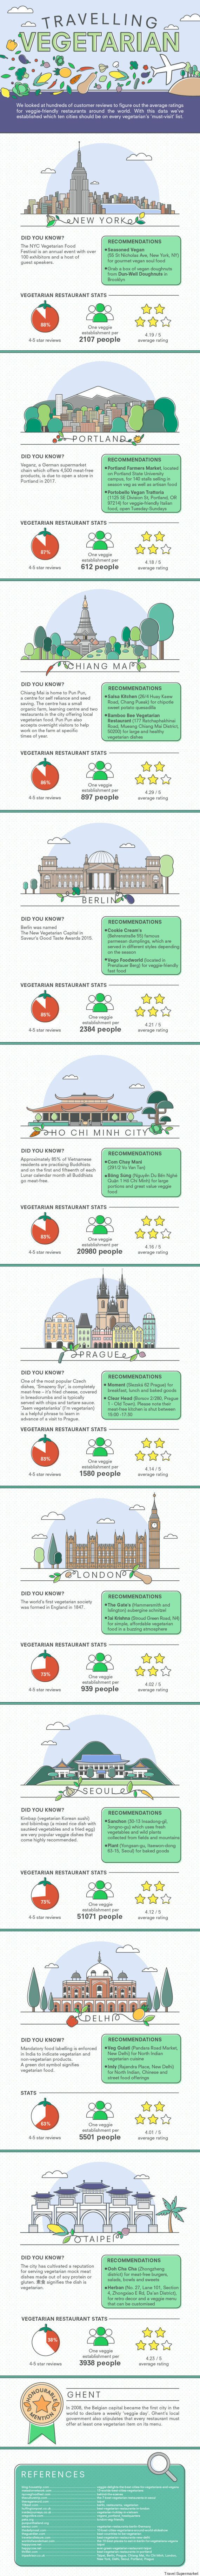 The 10 Most Vegetarian-Friendly Cities In The